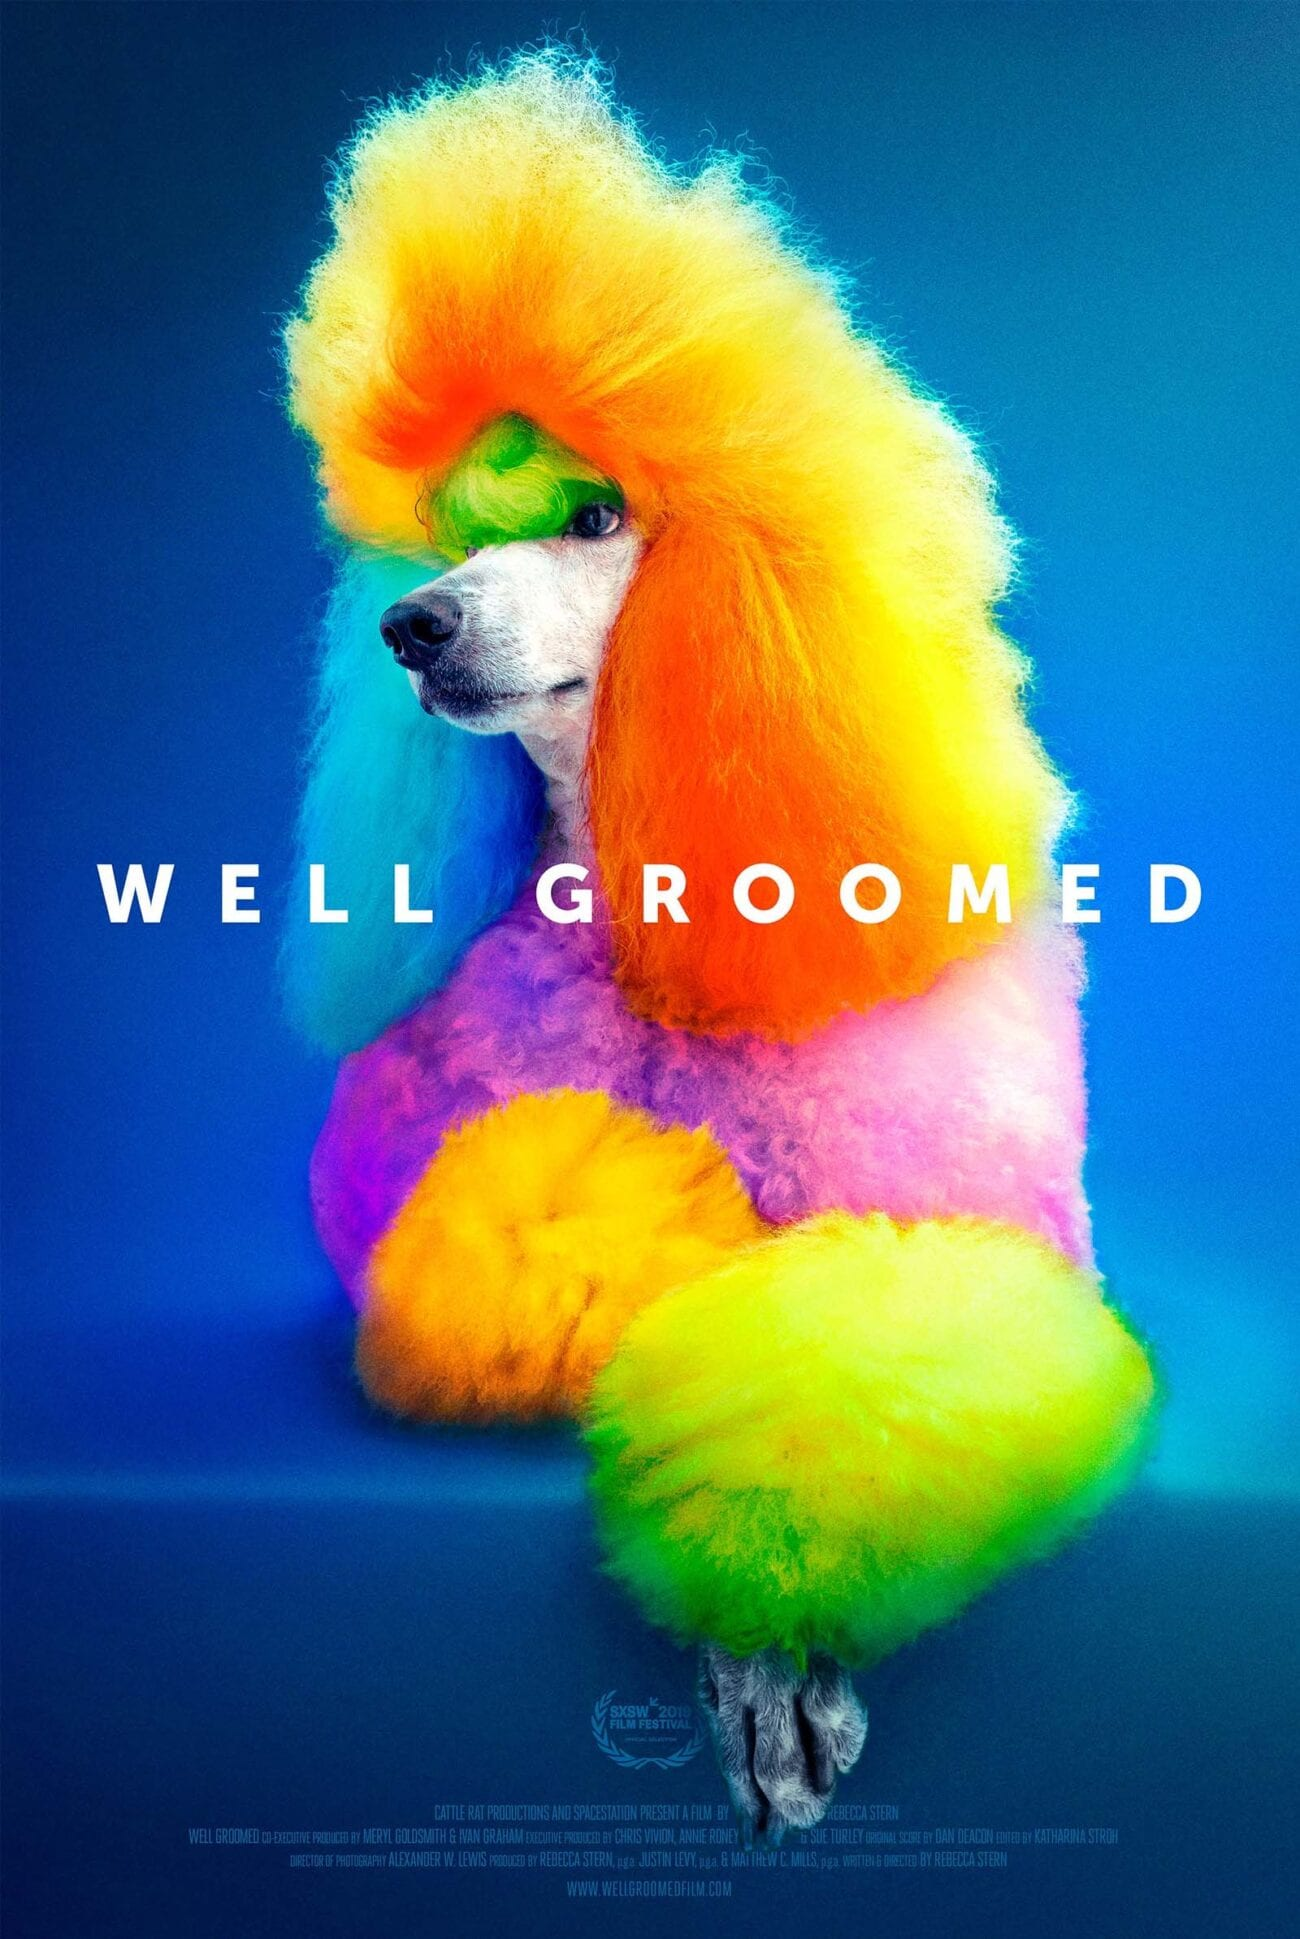 Well Groomed is a documentary which explores the vibrant world of color & glitter which is creative dog grooming.